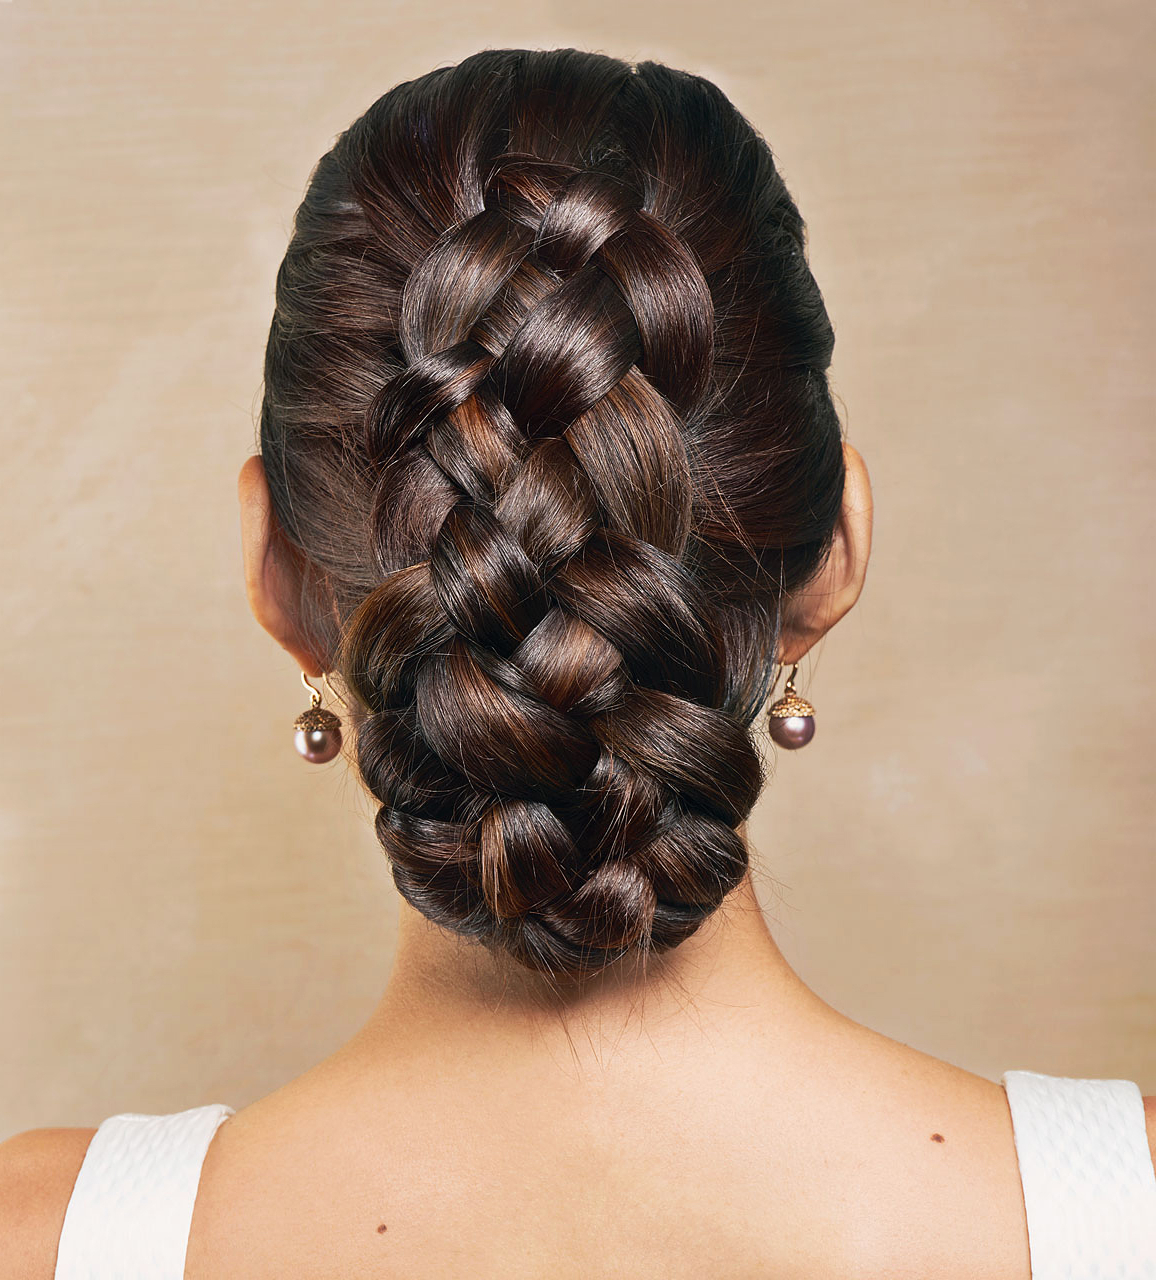 15 Fresh And Fabulous Wedding Hairstyles You Can Diy Intended For Famous Thick Wheel Pattern Braided Hairstyles (View 1 of 20)